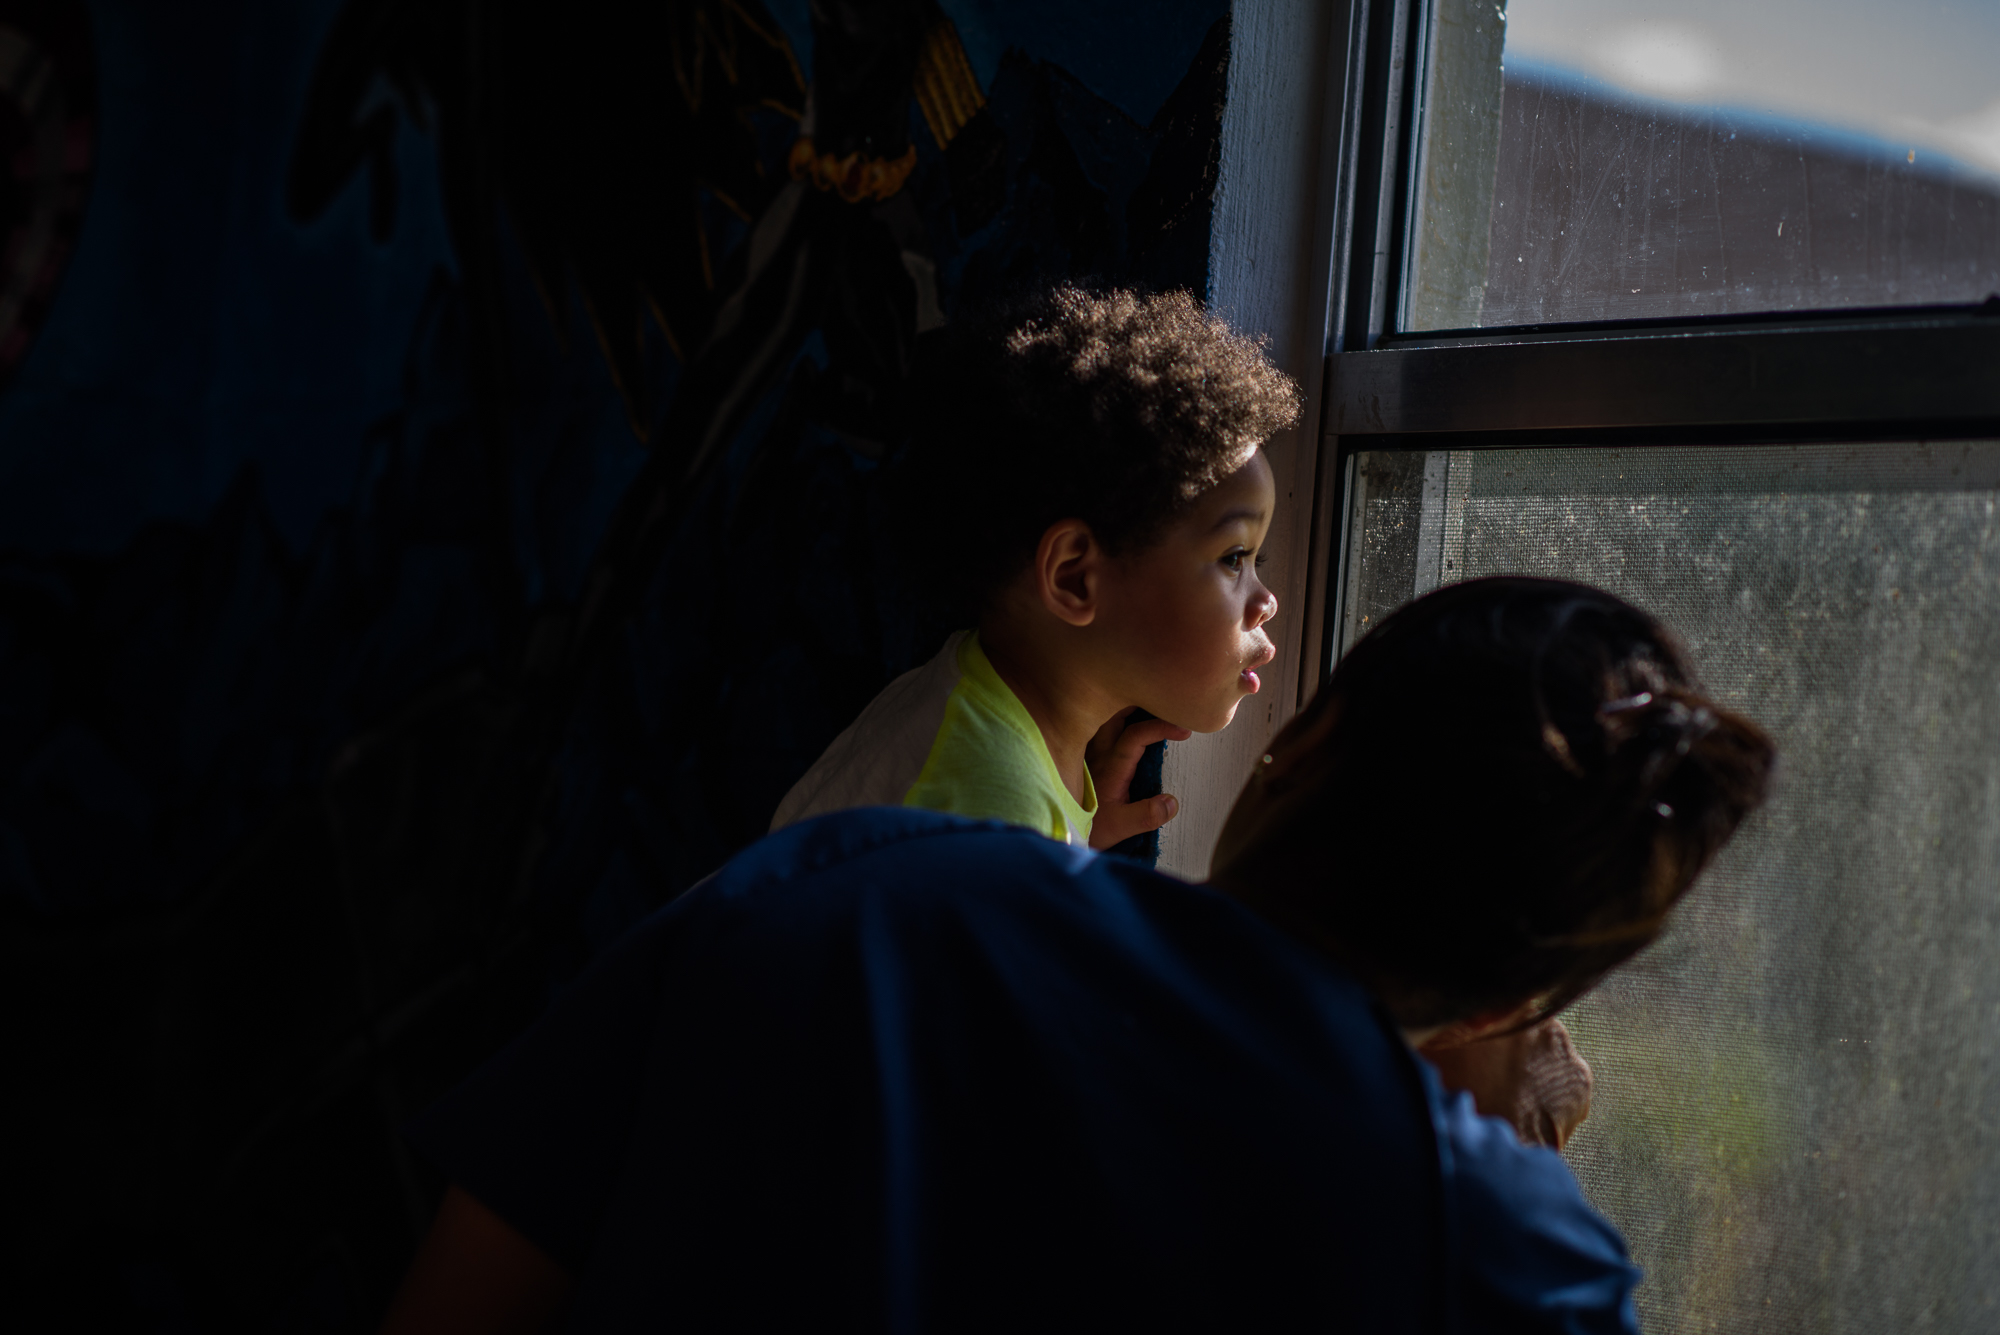 A boy looks out the window with his grandmother at the Homestead Correctional Institution.